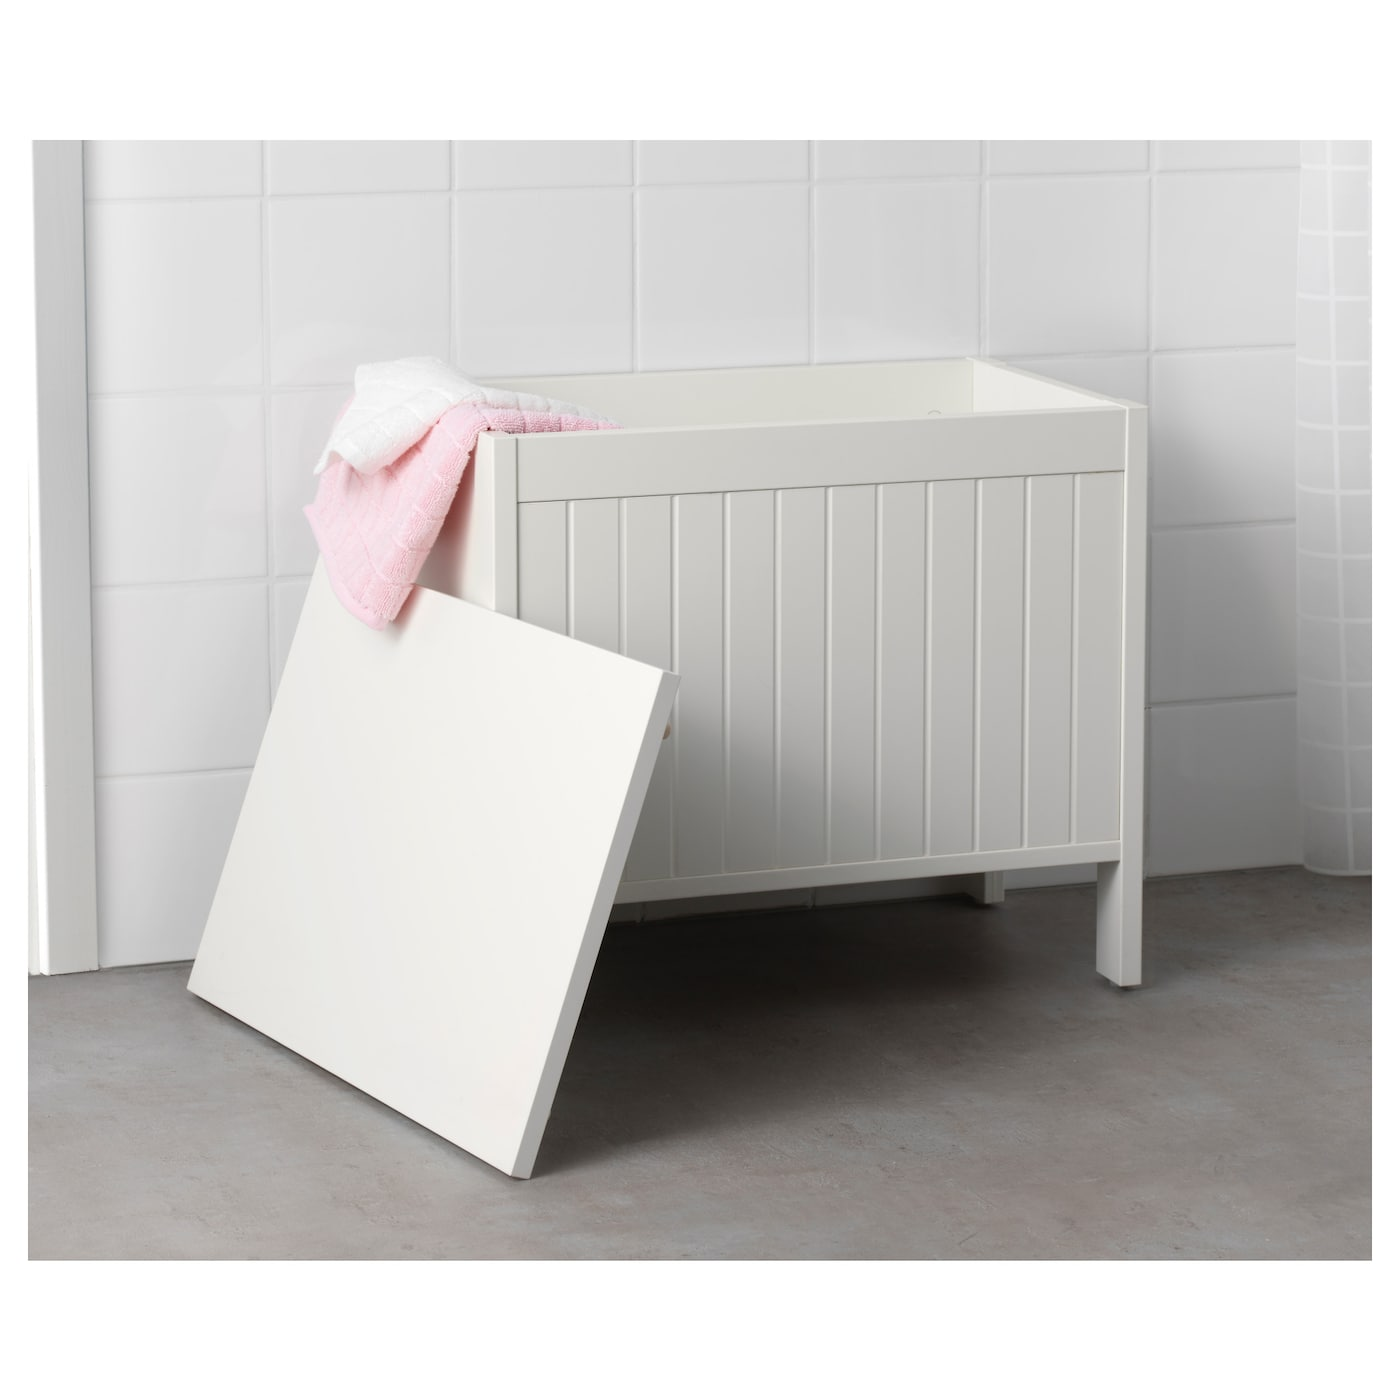 IKEA SILVERÅN storage bench A good solution if you are short of space.